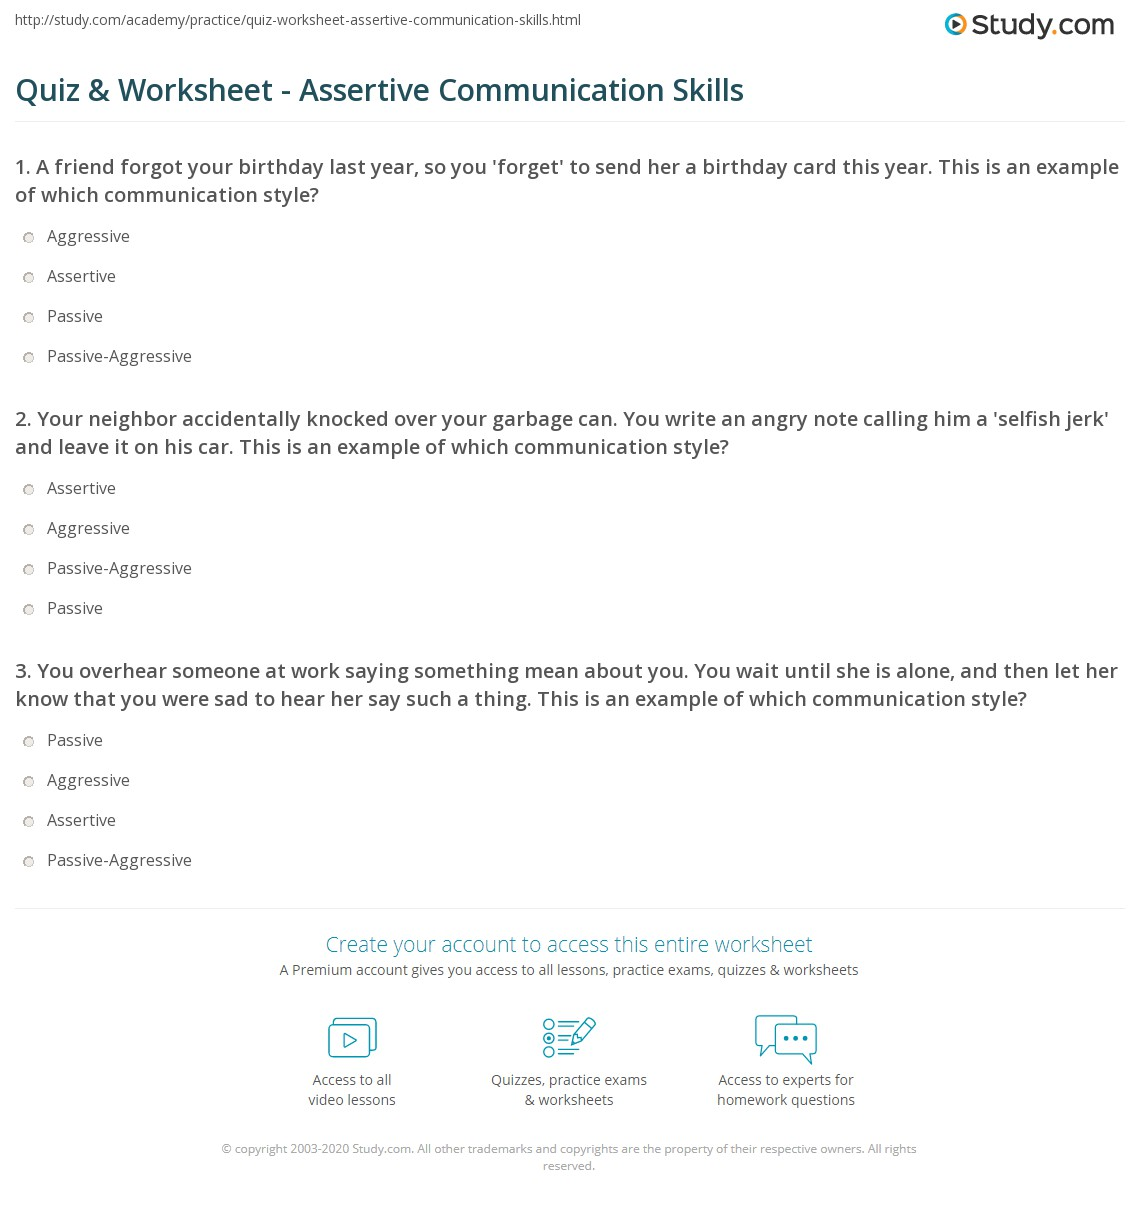 Uncategorized Assertive Communication Worksheet quiz worksheet assertive communication skills study com you write an angry note calling him a selfish jerk and leave it on his car this is example of which style assertive